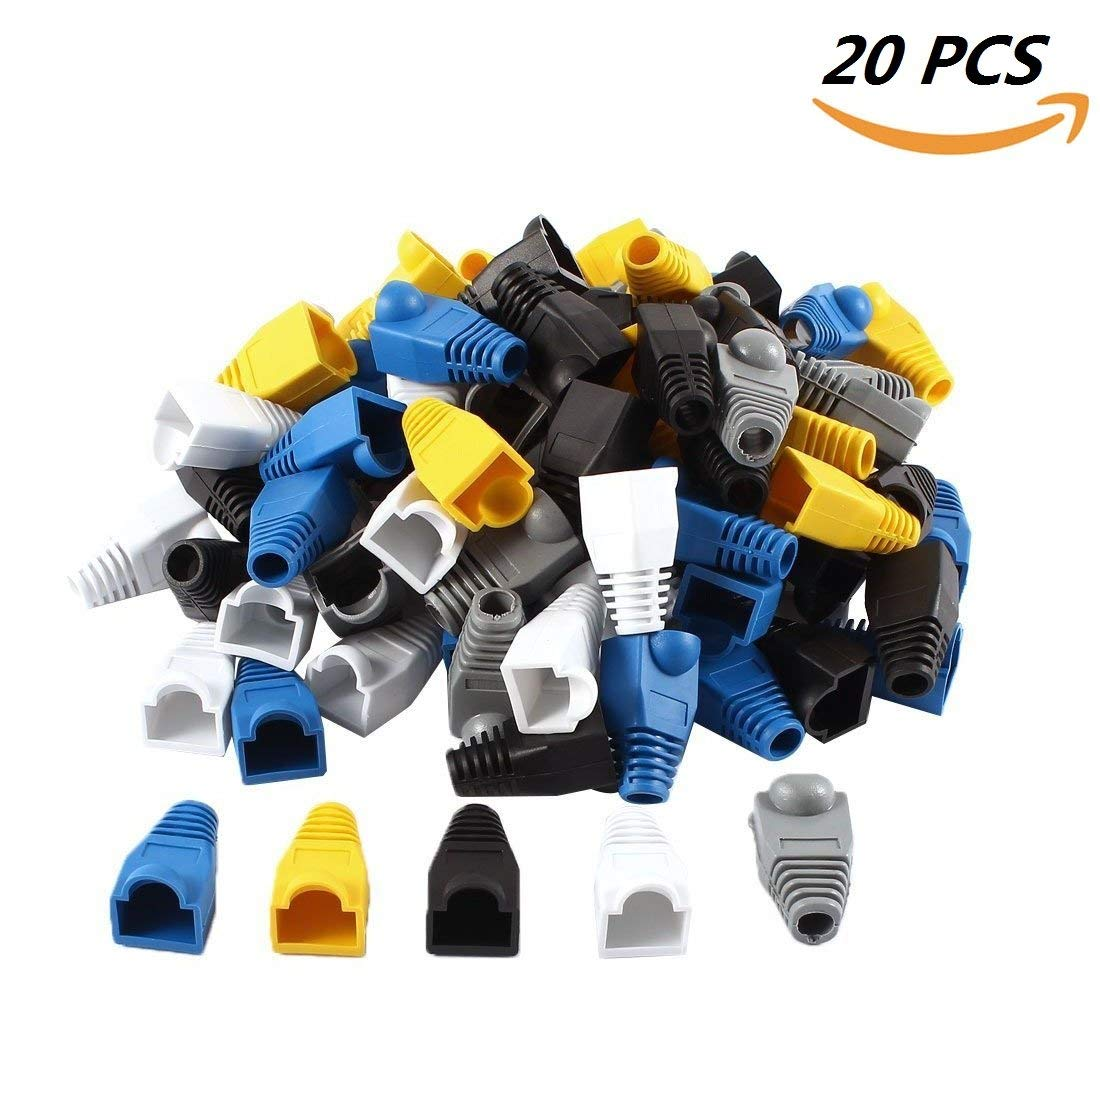 EVERMARKET Strain Relief Boots Soft Plastic Ethernet RJ45 Cable Connector Boots Cover (20 PCS)